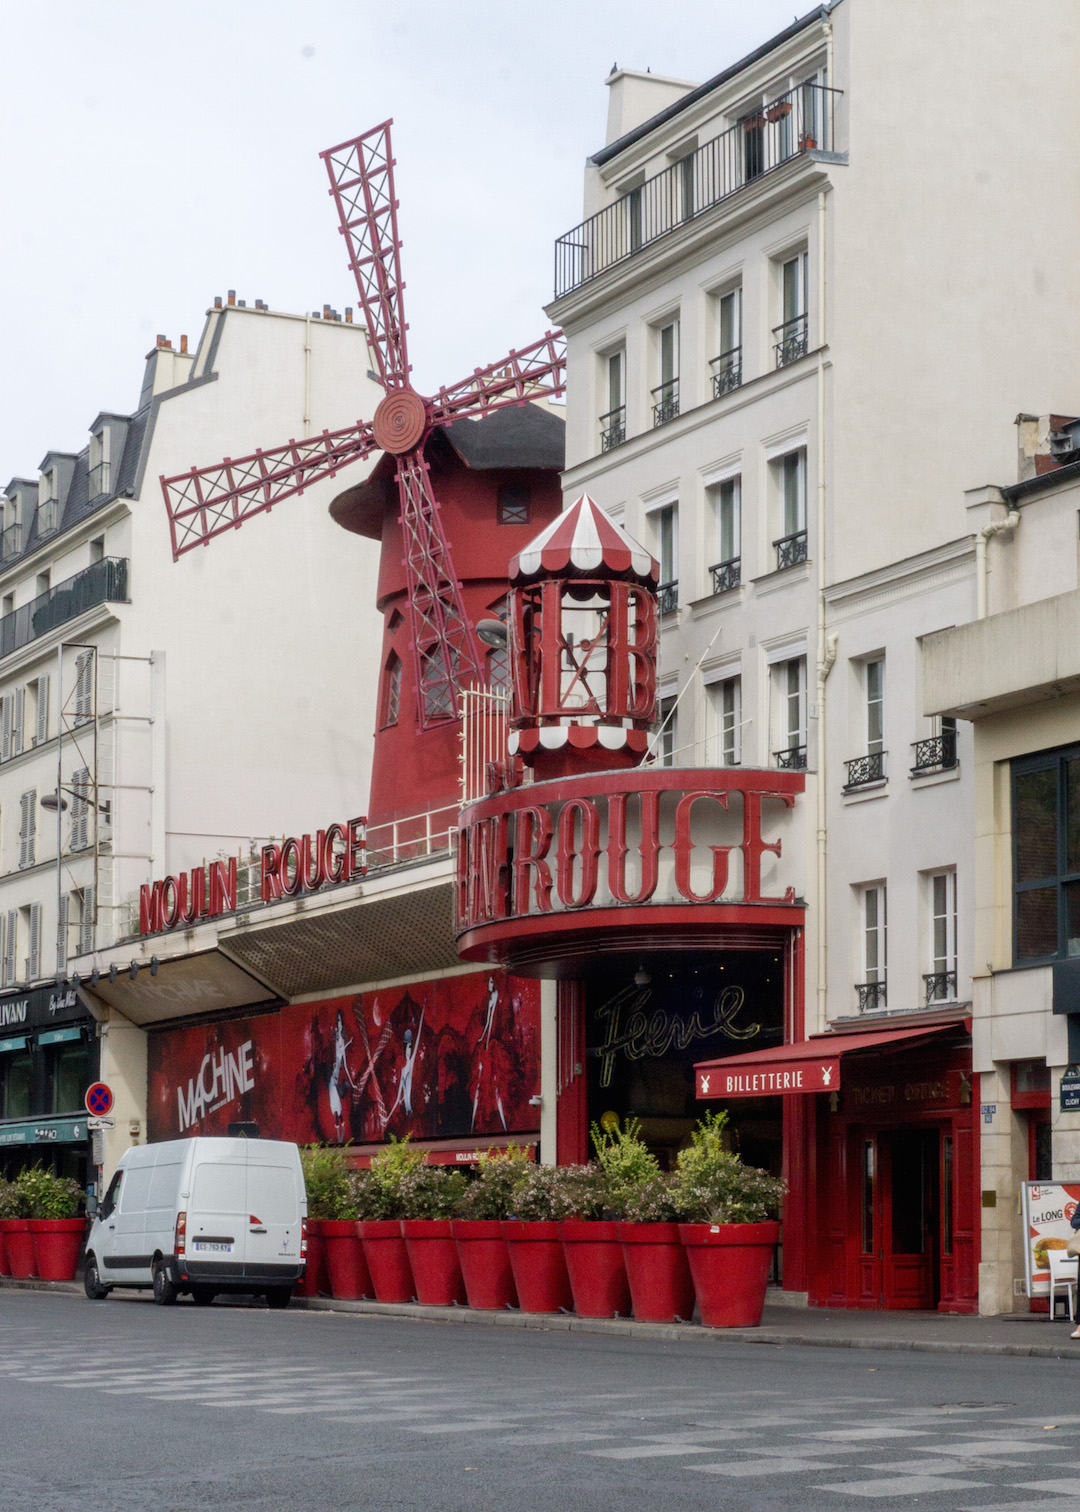 Montmarte Moulin Rouge